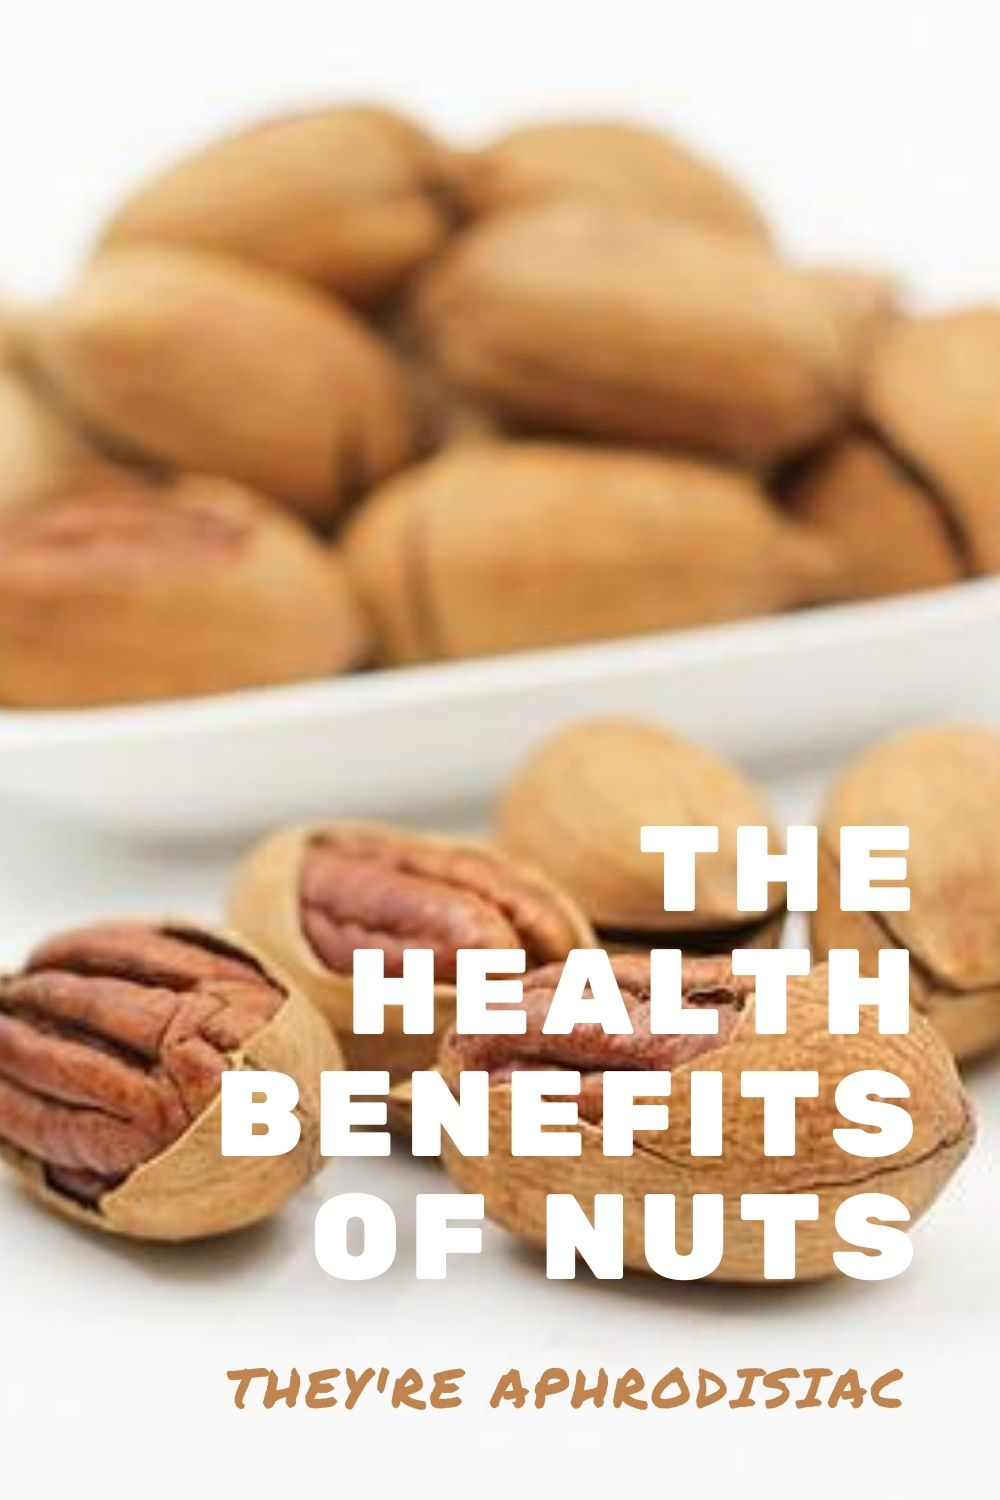 the health benefits of nuts graphic